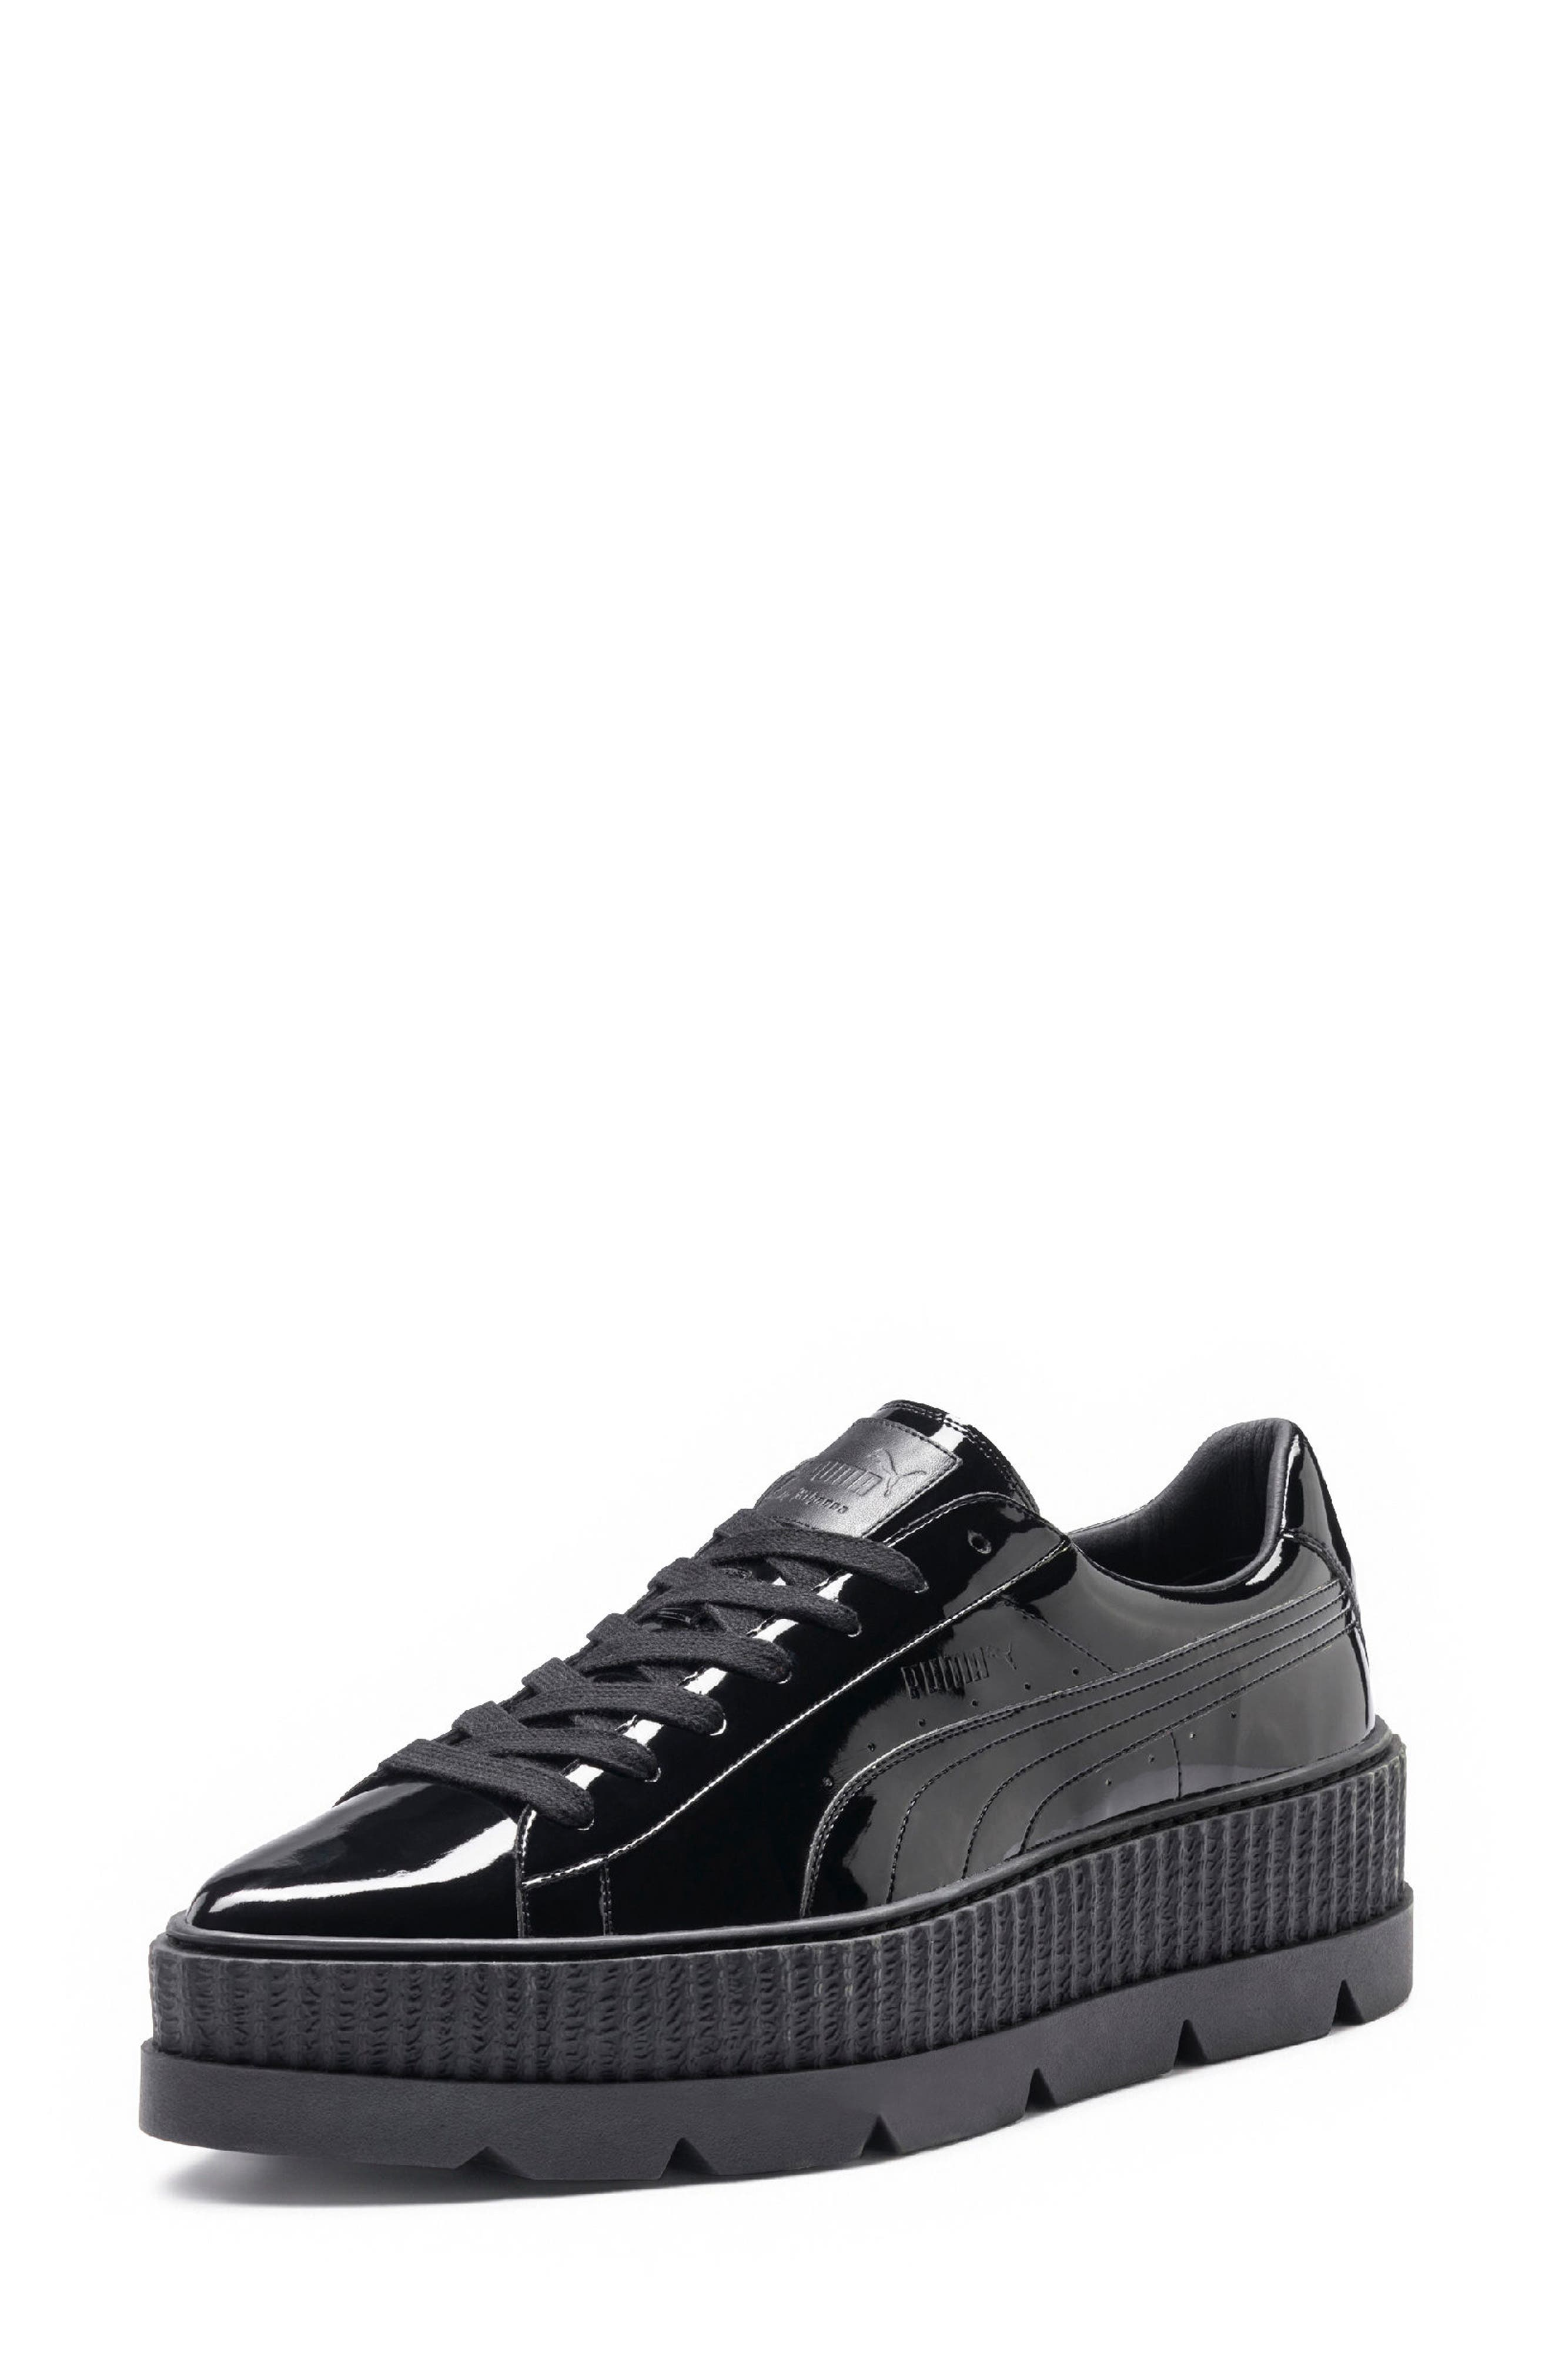 FENTY PUMA by Rihanna Pointy Toe Creeper Sneaker (Women)